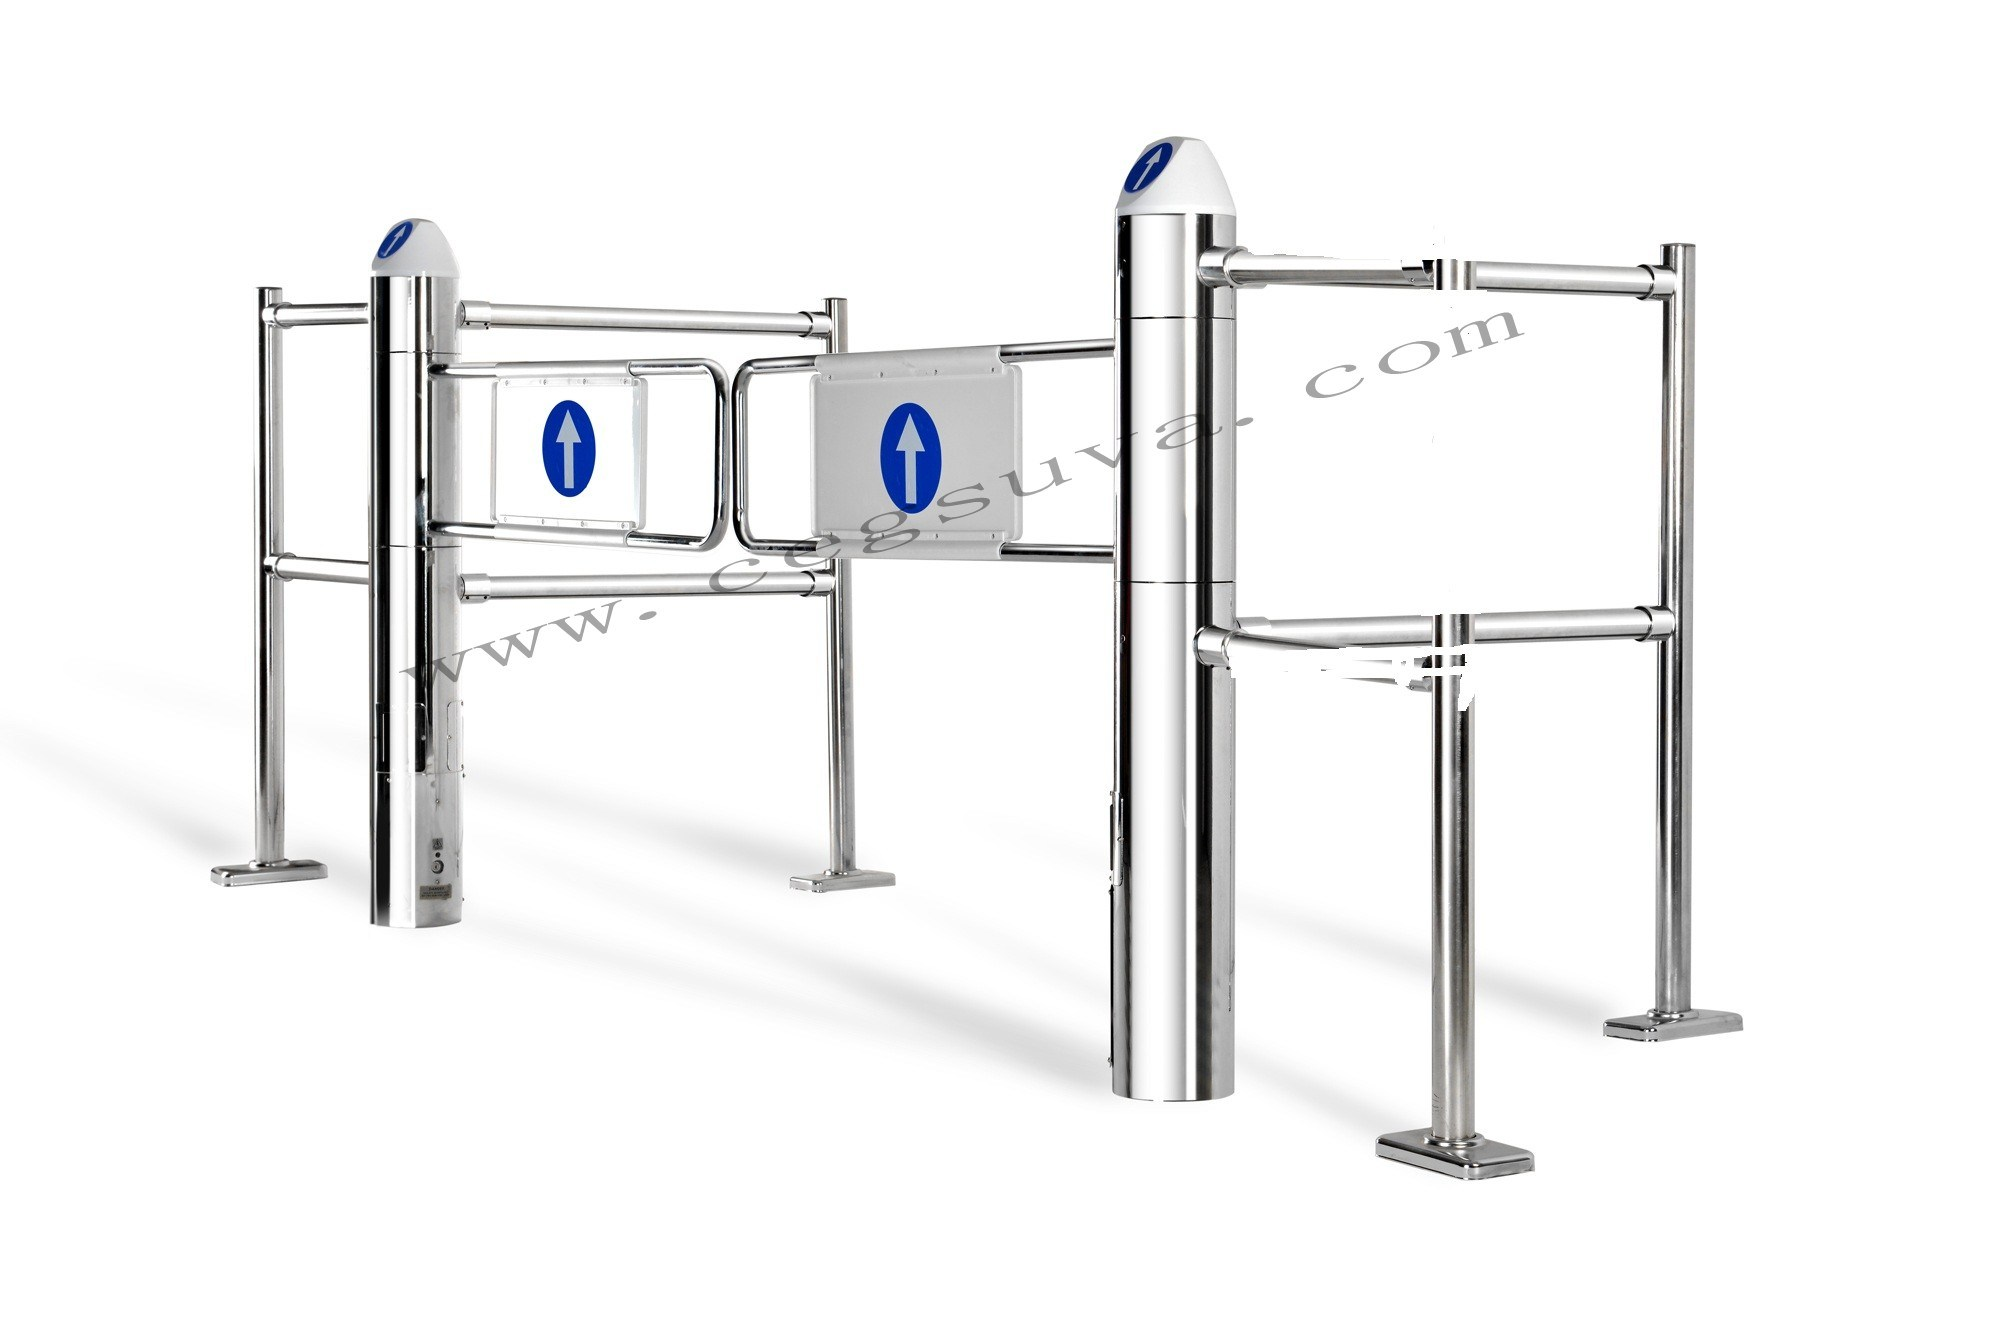 Supermarkt Swing Gate, Supermarket Entrance Gates of Rotogate, Automatic Swing Door (DR-01)